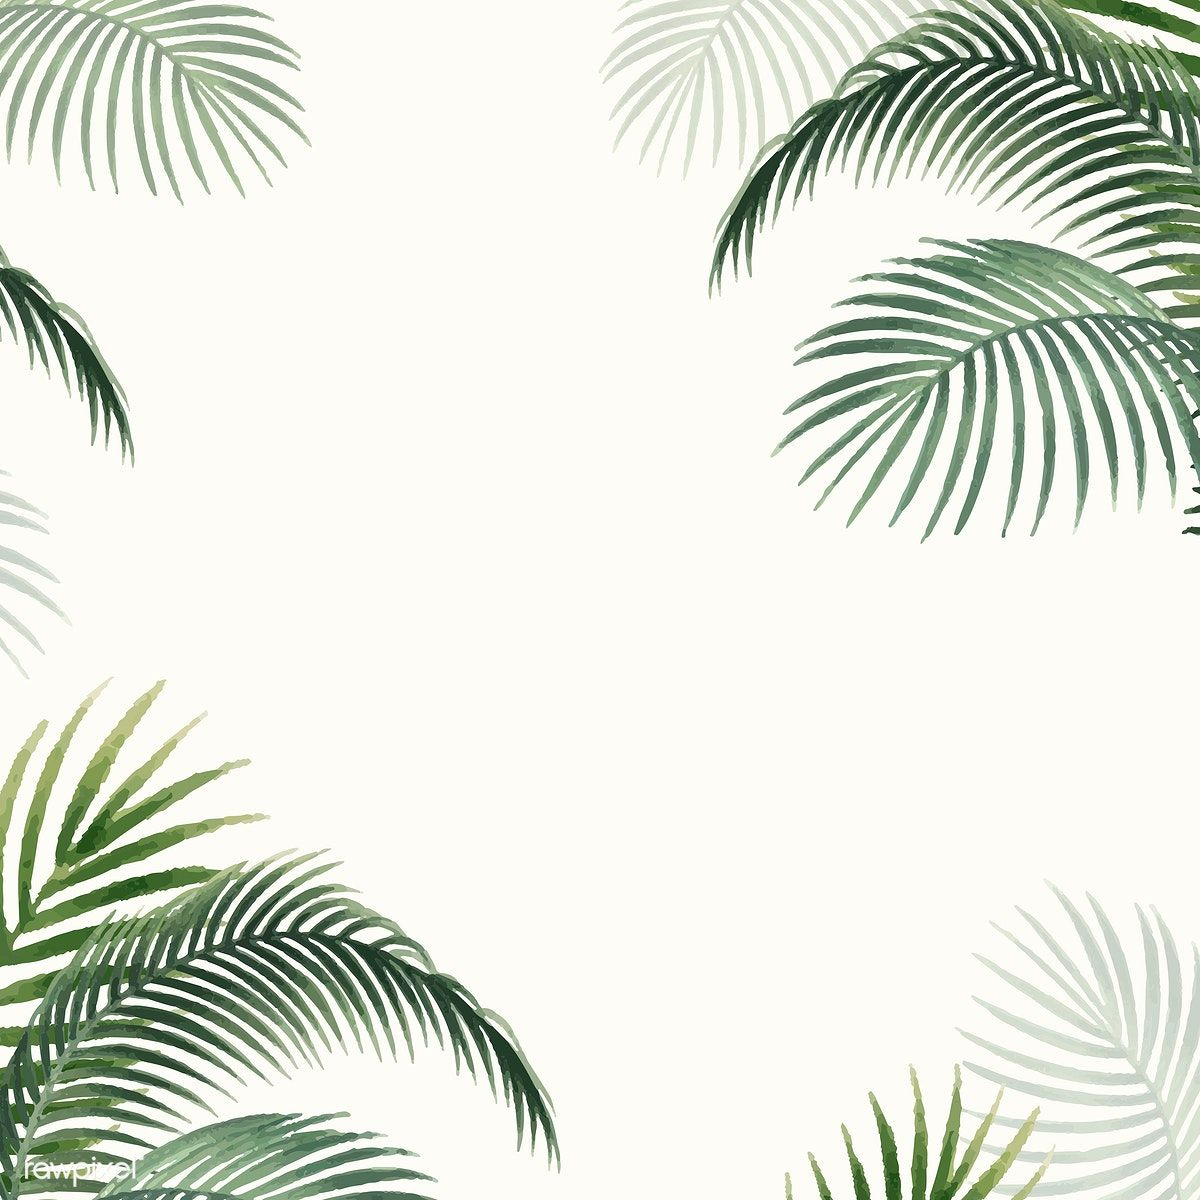 Download Premium Vector Of Frame With Palm Leaves Vintage Illustration Vintage Illustration Palm Leaves Vector Free